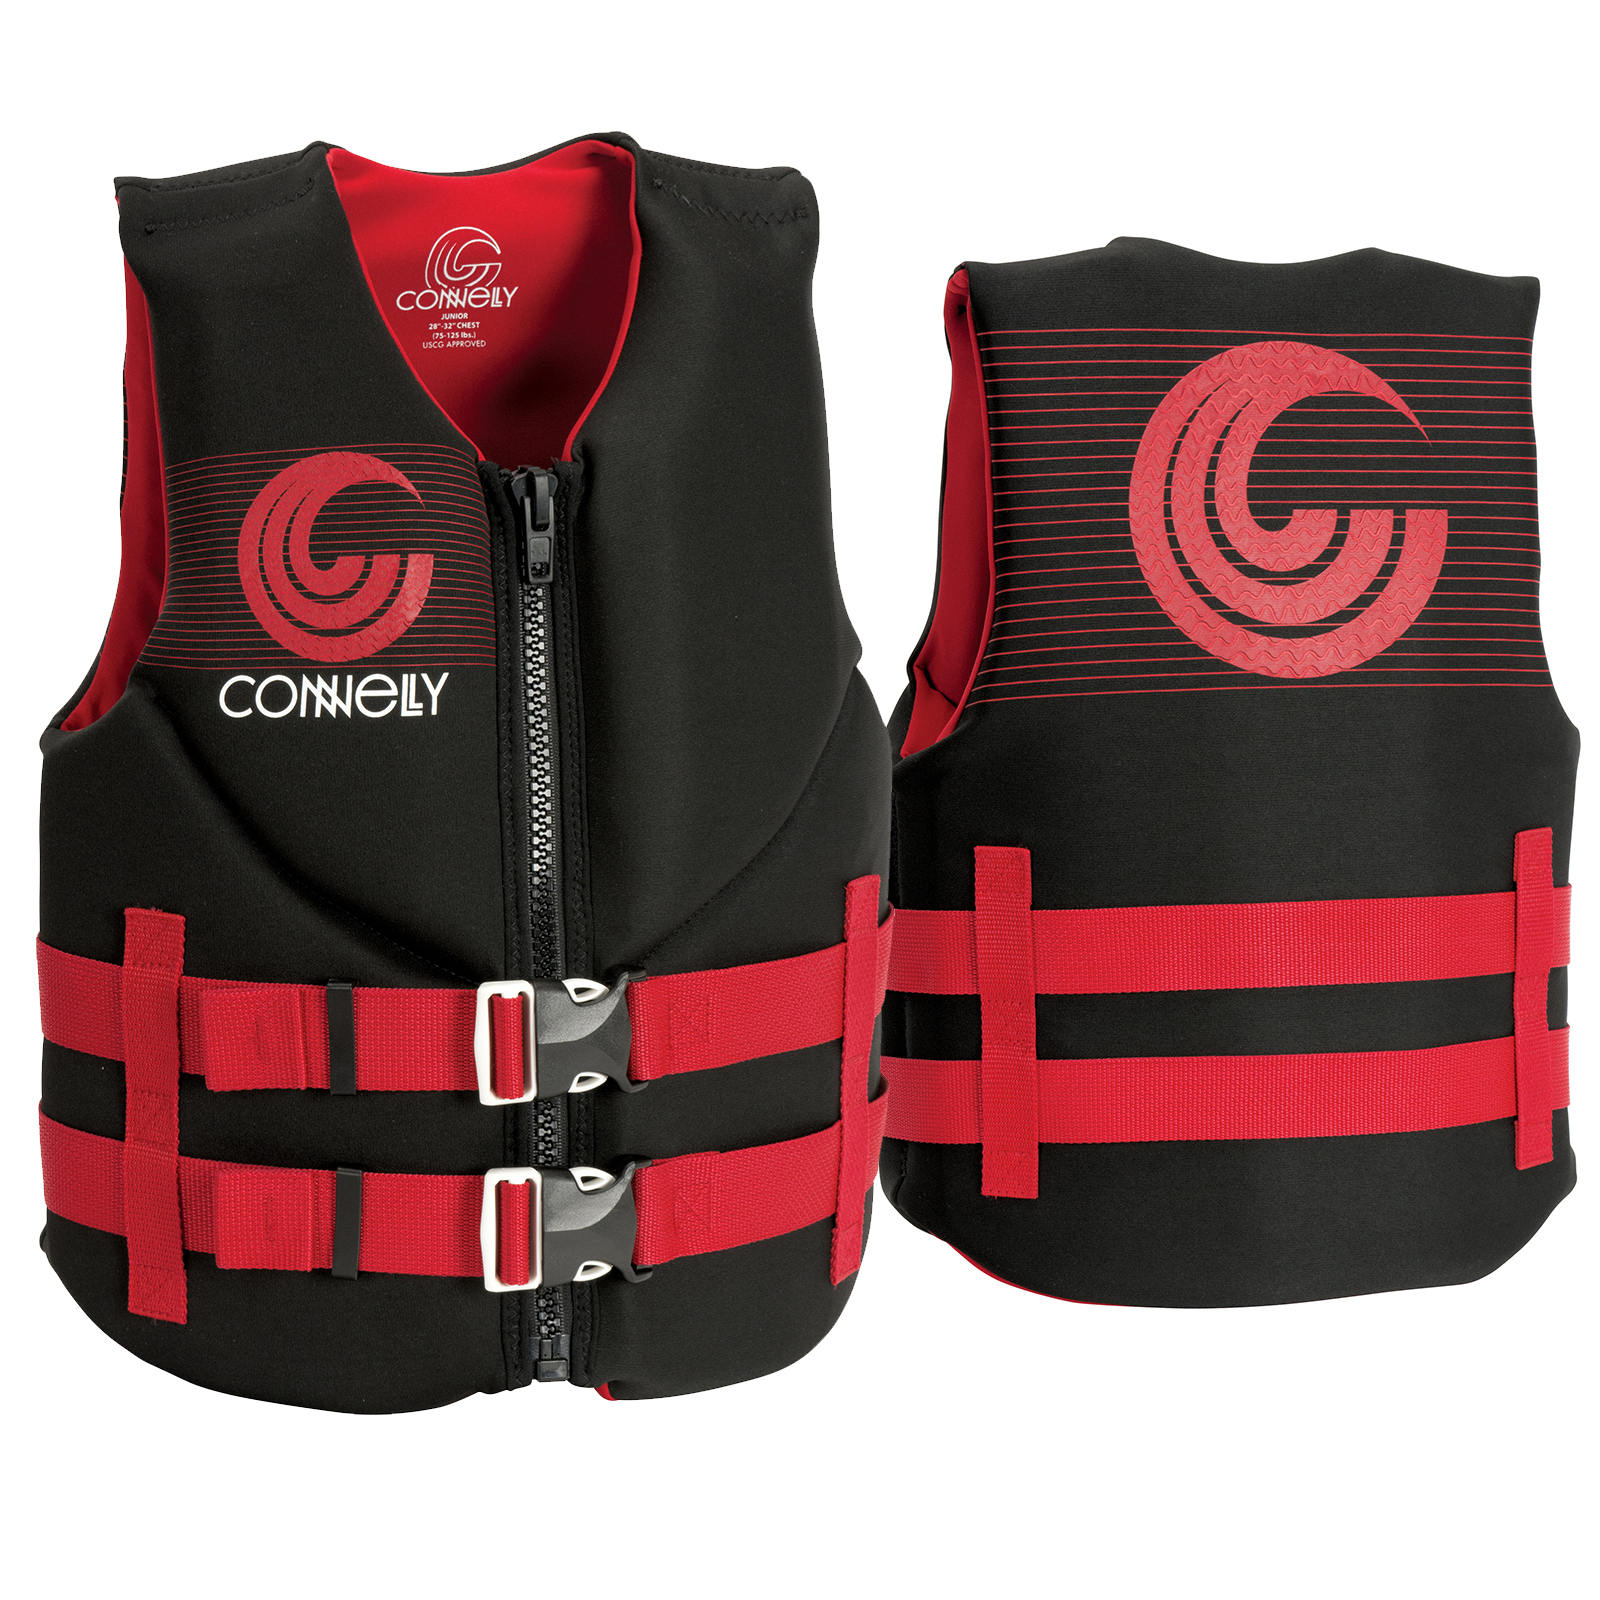 BOY'S PROMO NEO LIFE VEST - JUNIOR 35-55KG CONNELLY 2018